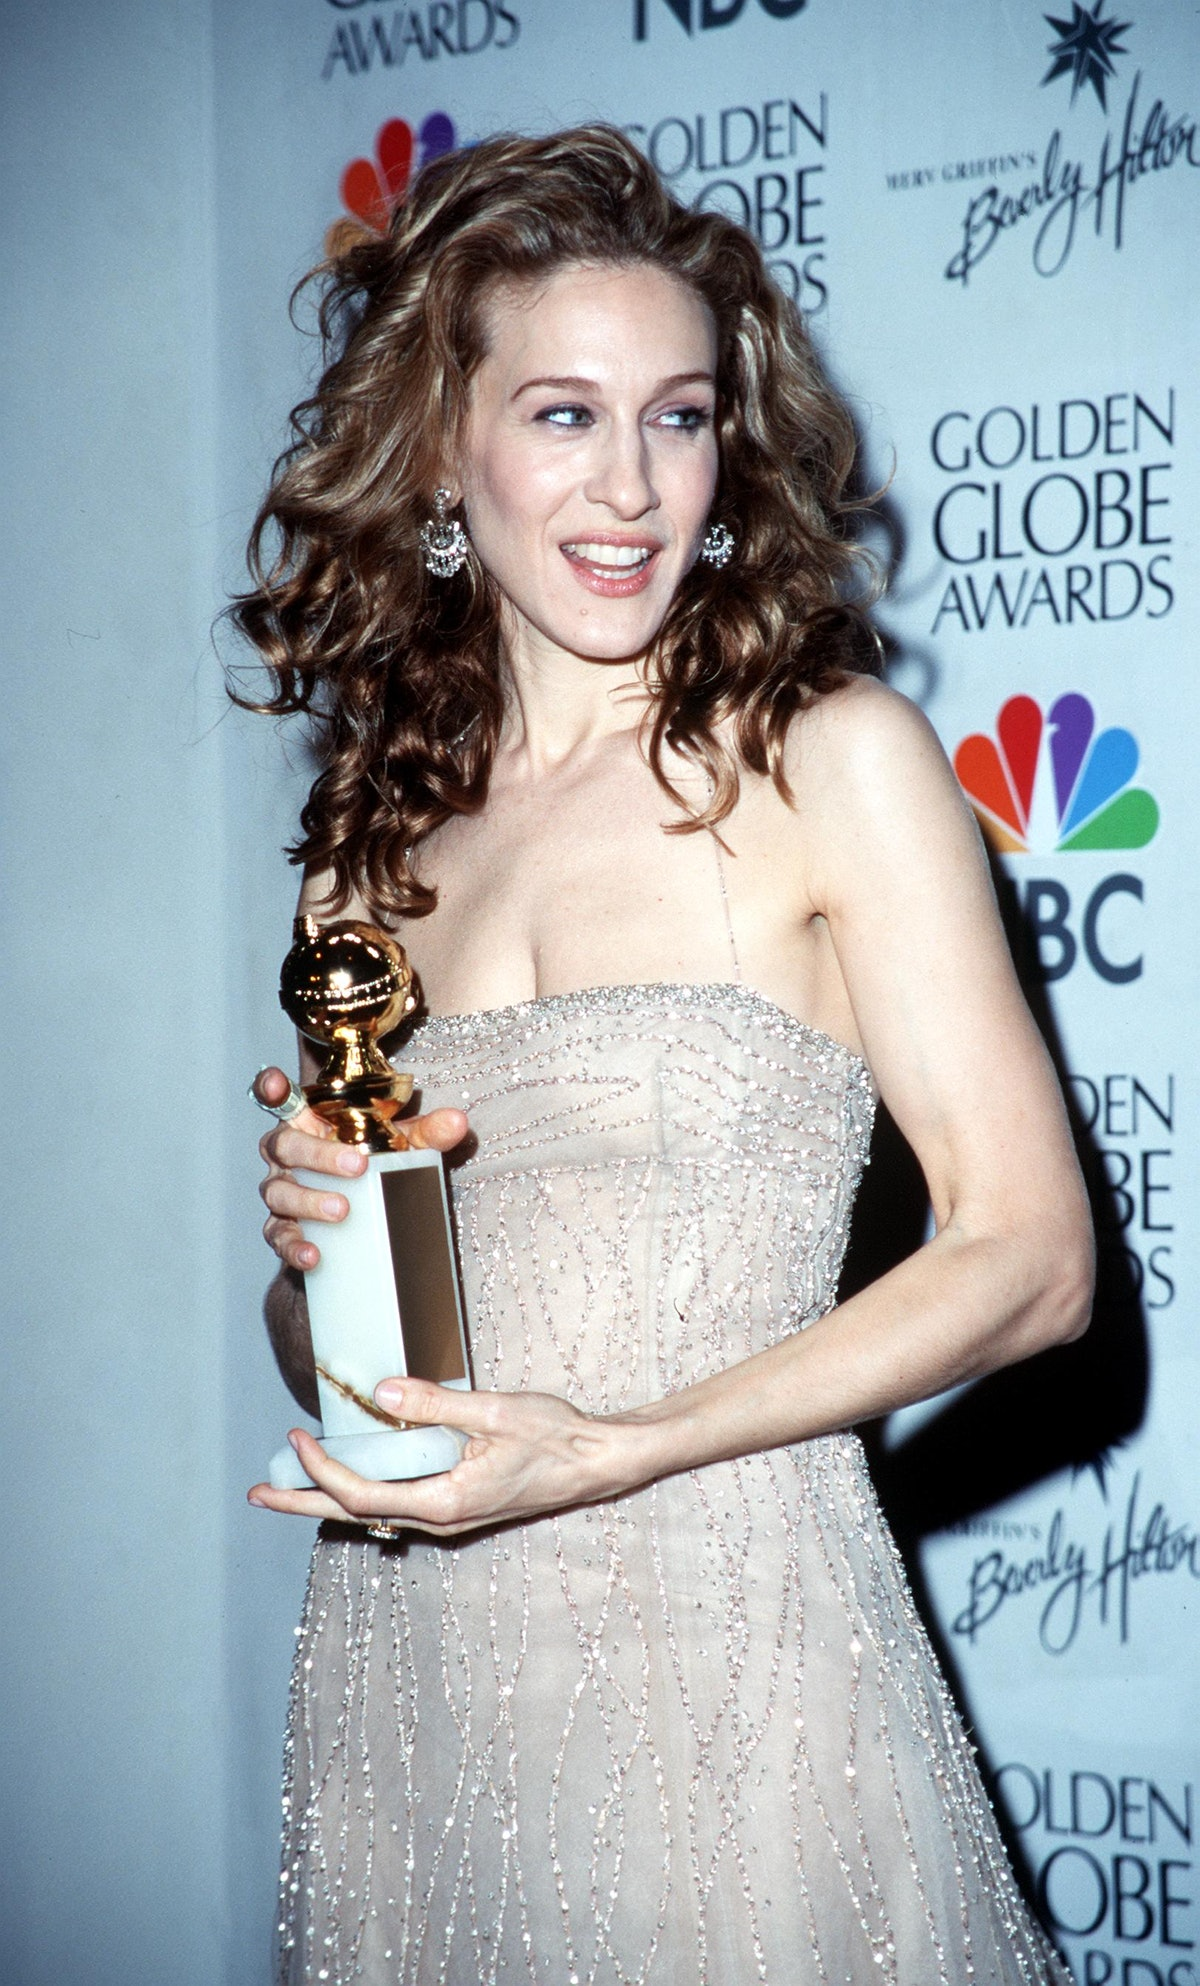 Sarah Jessica Parker at the 57th Annual Golden Globe Awards